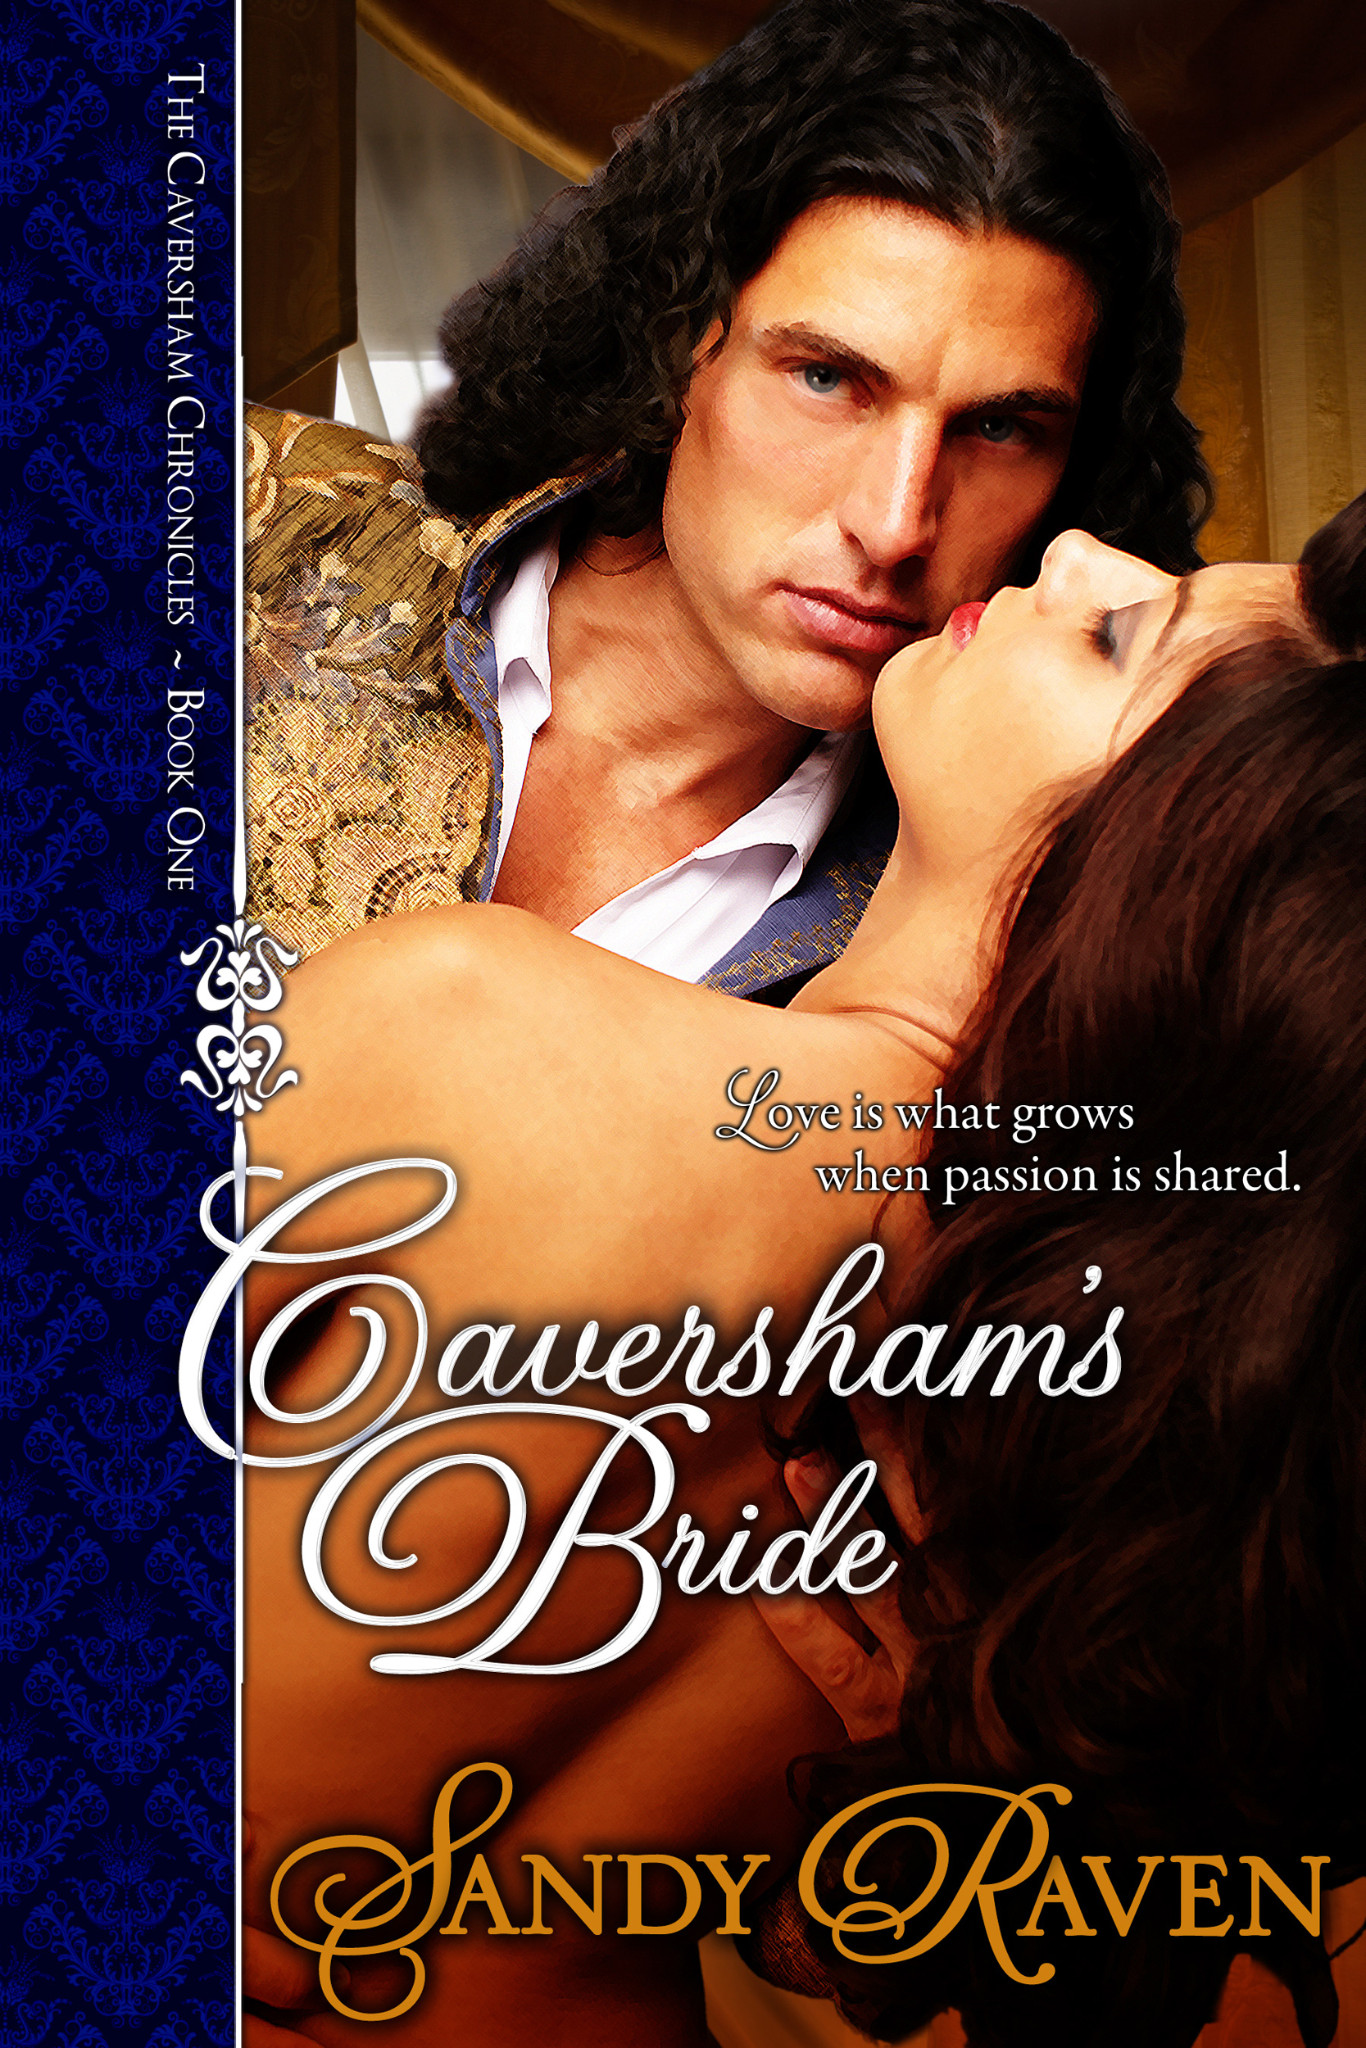 Caversham's Bride